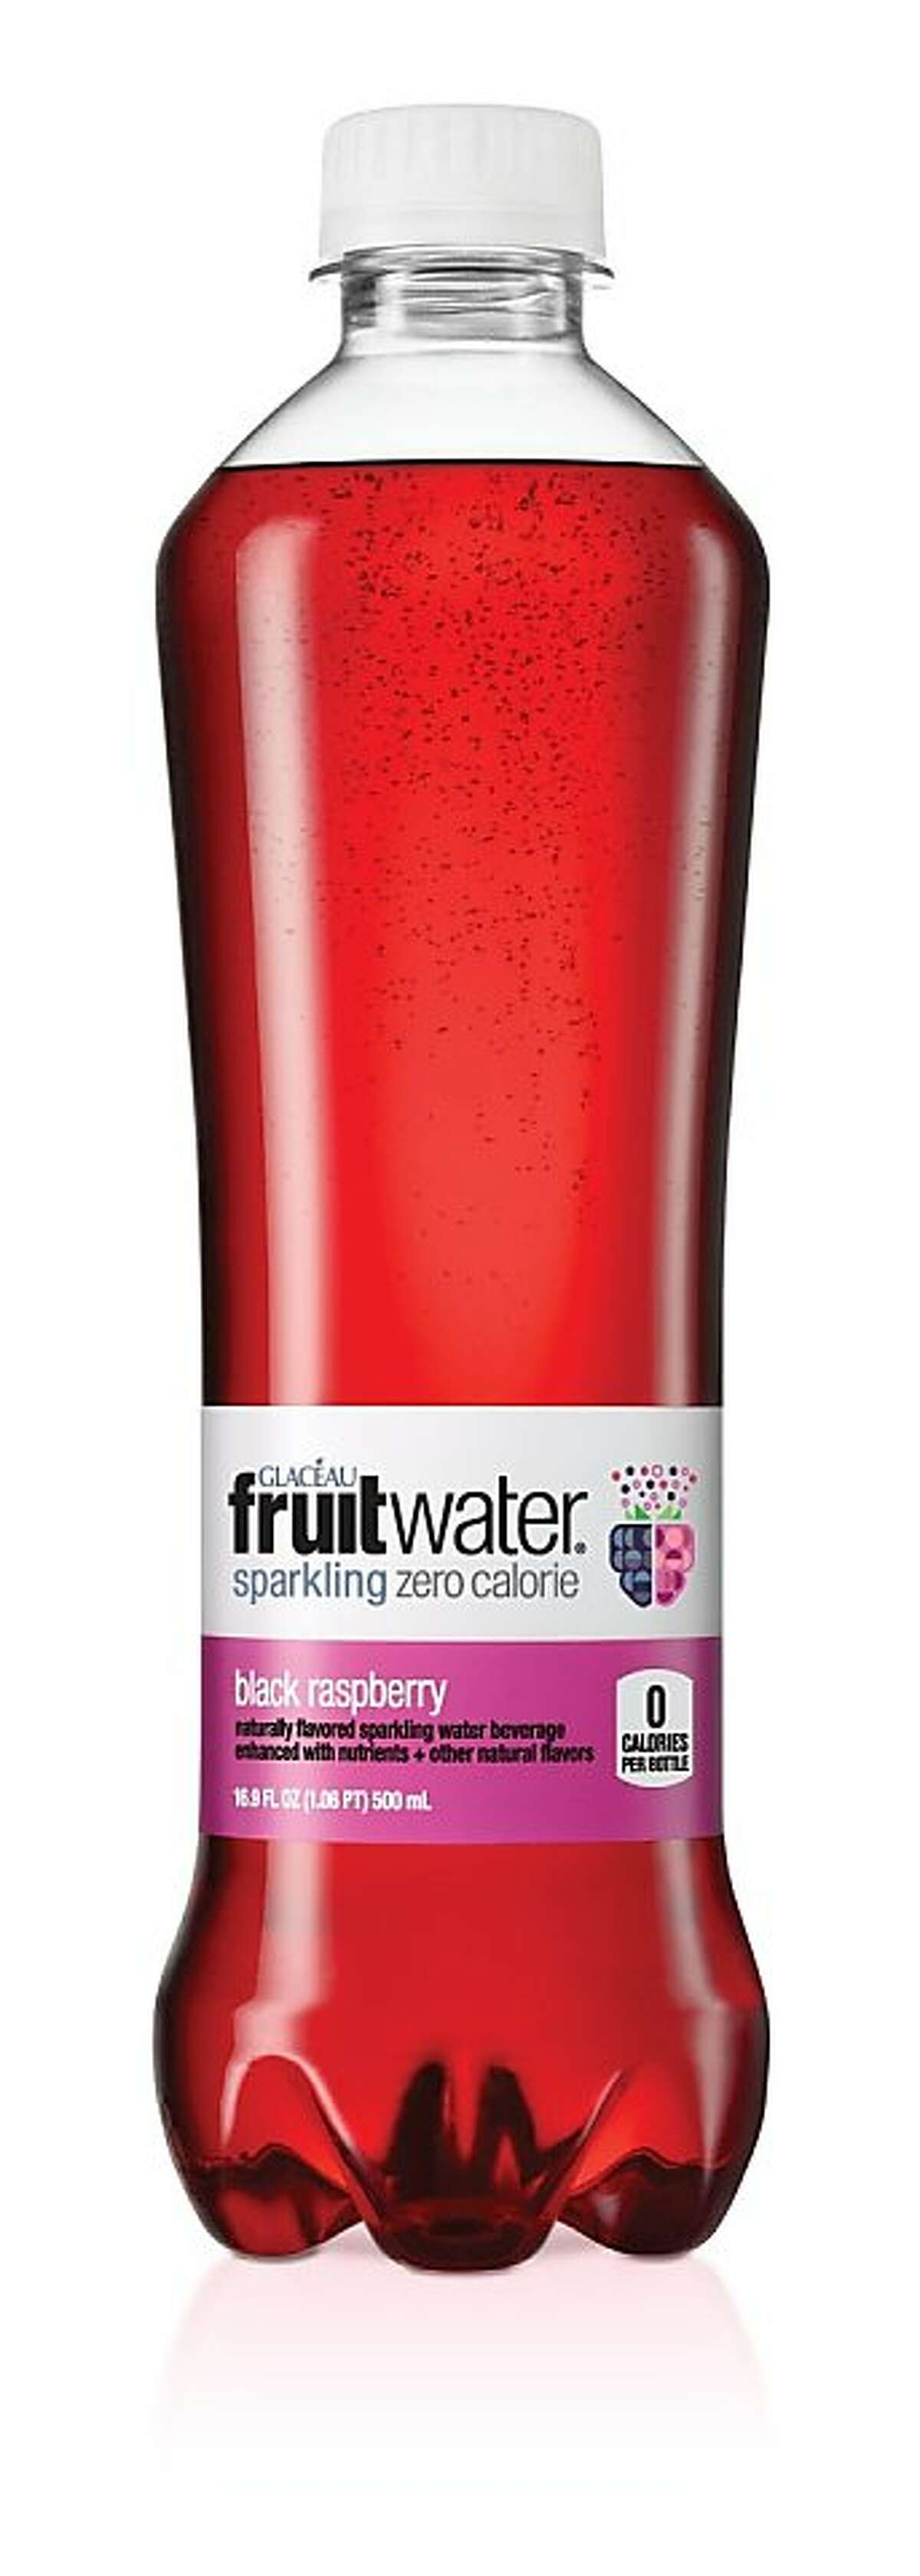 This product image provided by Coca-Cola shows a bottle of black raspberry flavored Fruitwater. Coca-Cola is introducing a line of fruit-flavored seltzer waters called Fruitwater on April 1. The drink is part of the company's Glaceau unit, which also makes Smartwater and Vitaminwater. (AP Photo/Coca-Cola)